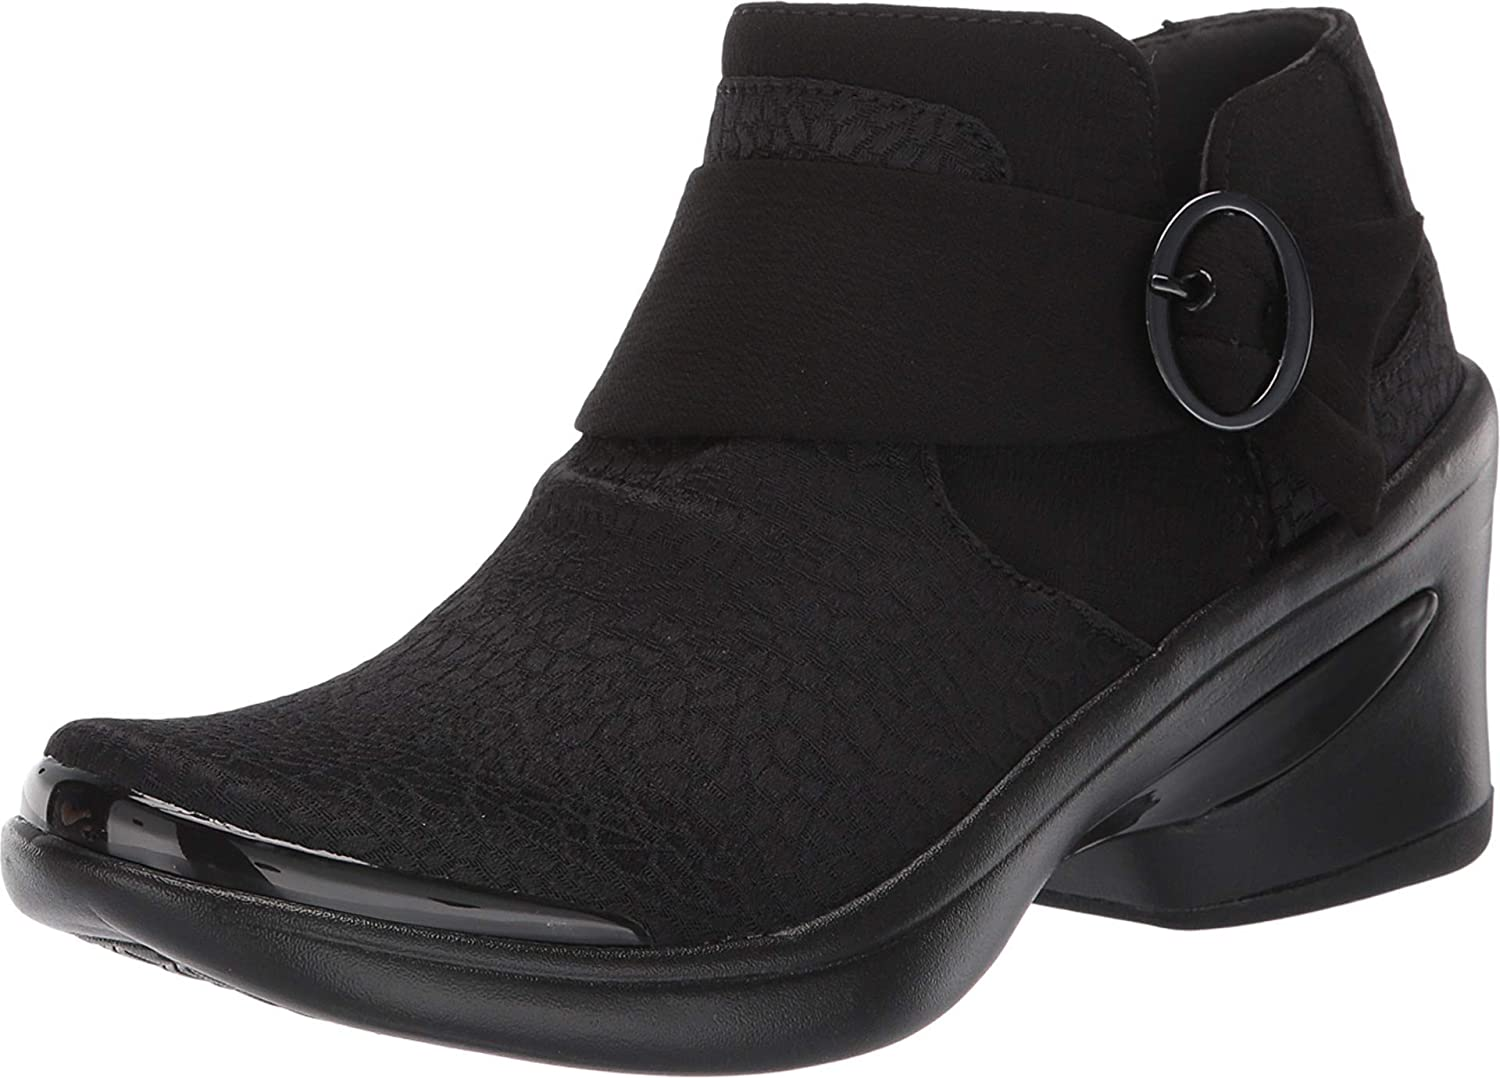 Essence Booties Ankle Boot